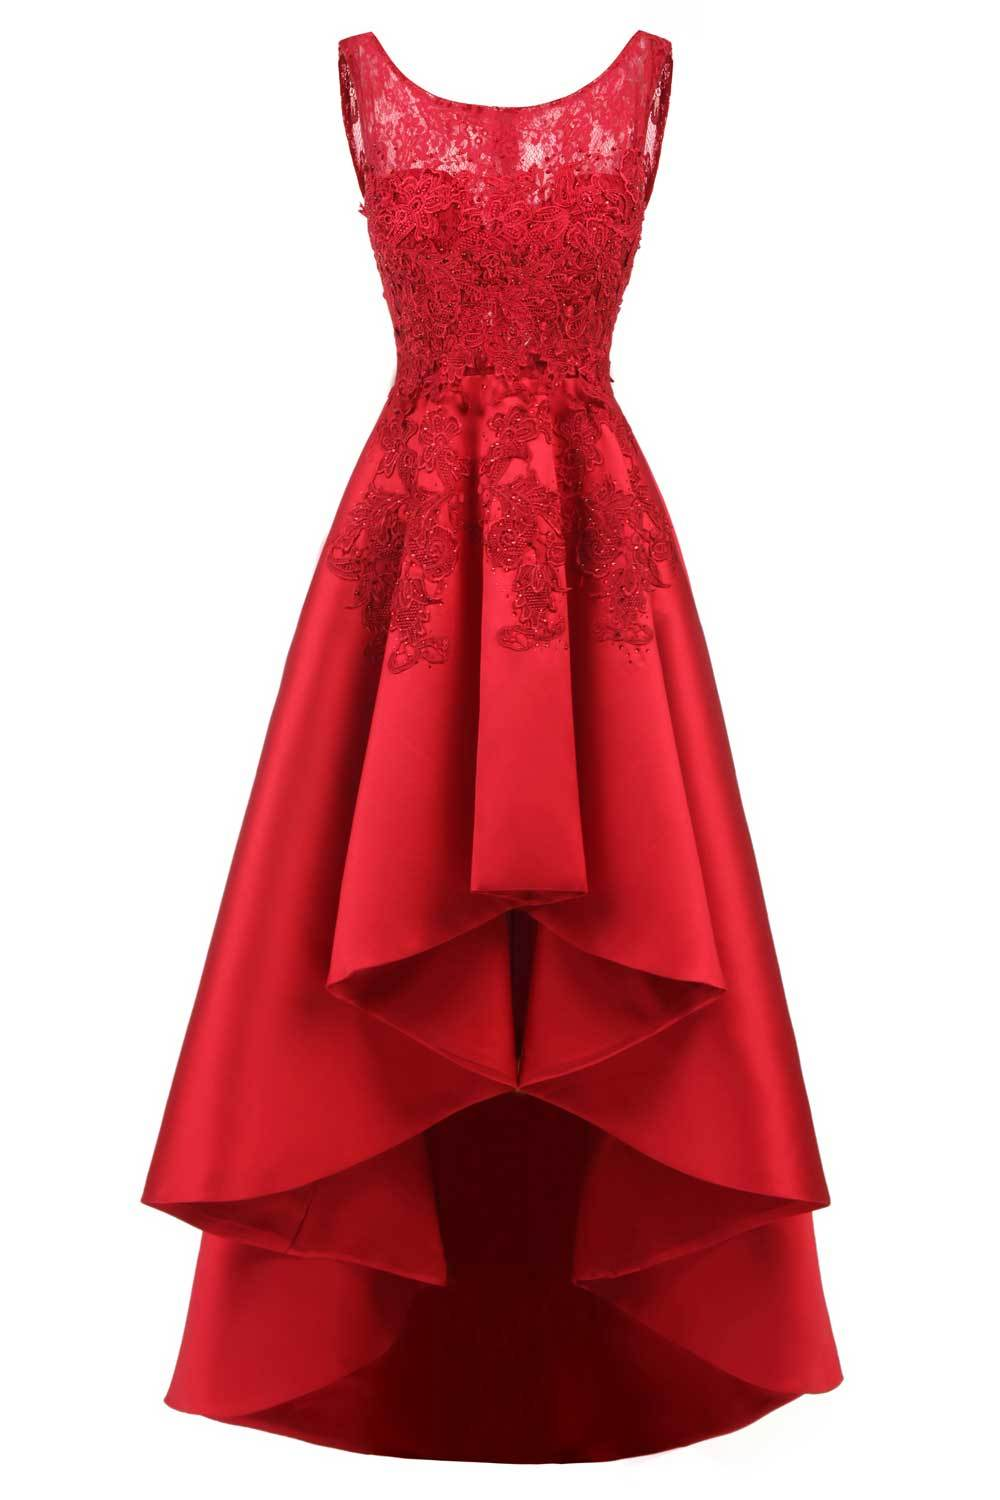 High Low Prom Dress Lace Applique Bridesmaid Dresses Sleeveless Homecoming Gown